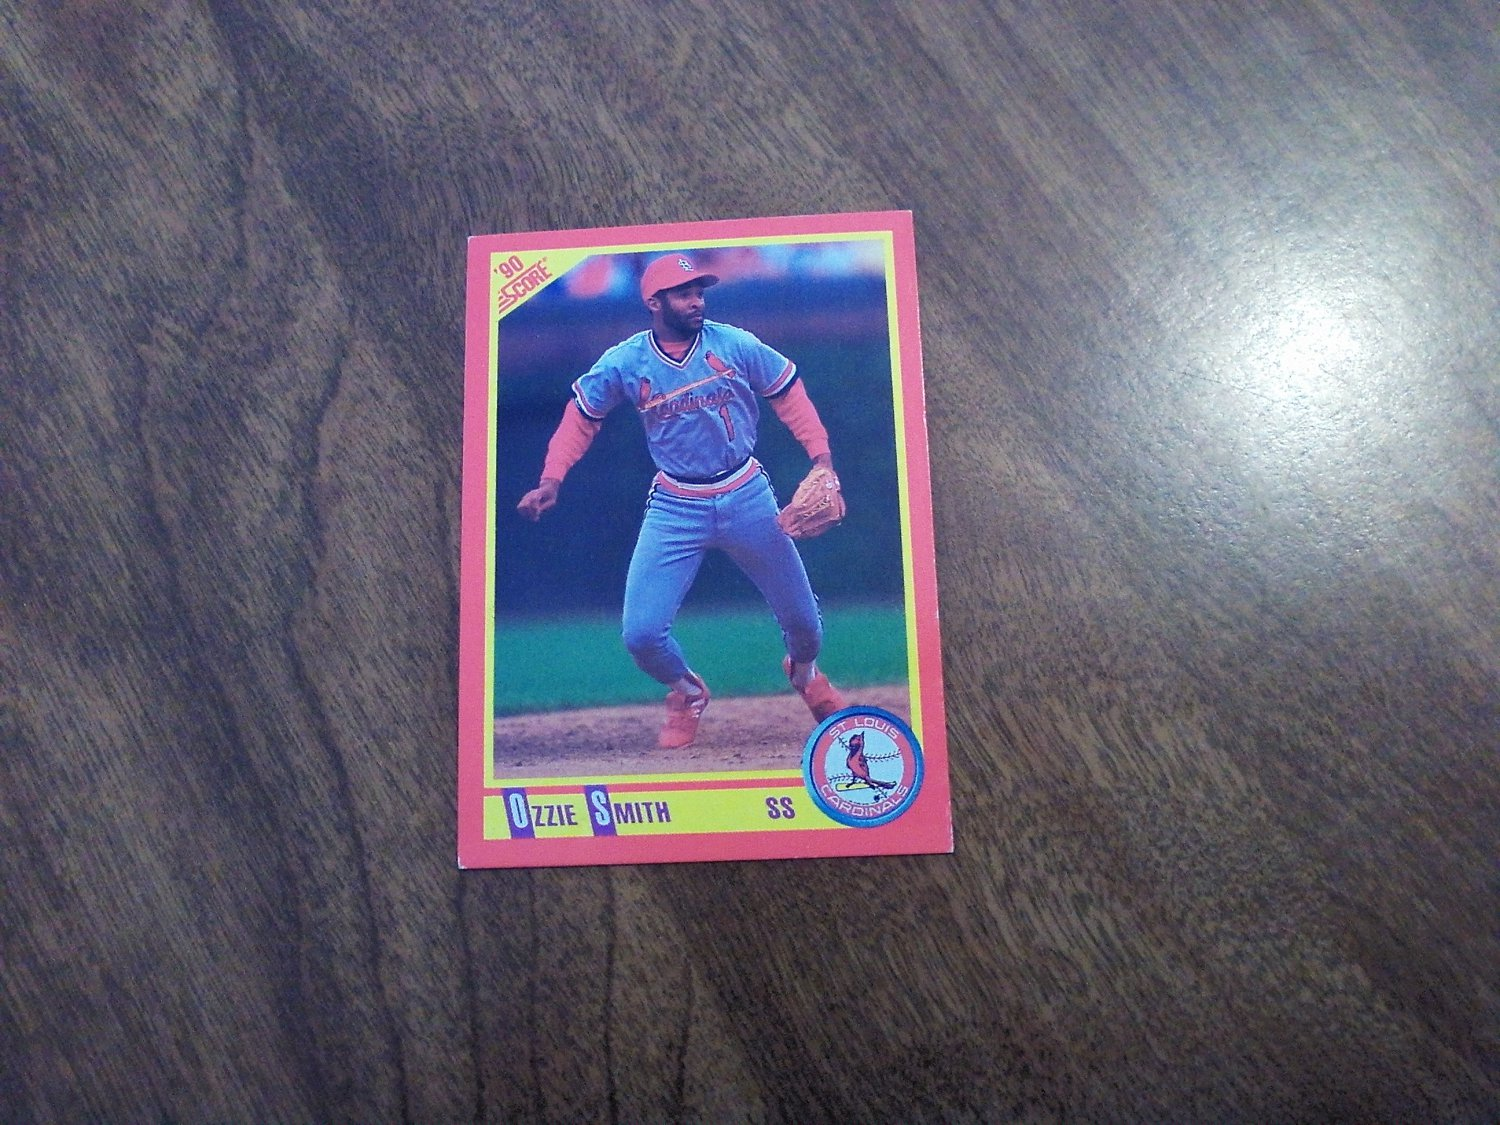 Ozzie Smith St Louis Cardinals 285 1990 Score Baseball Card